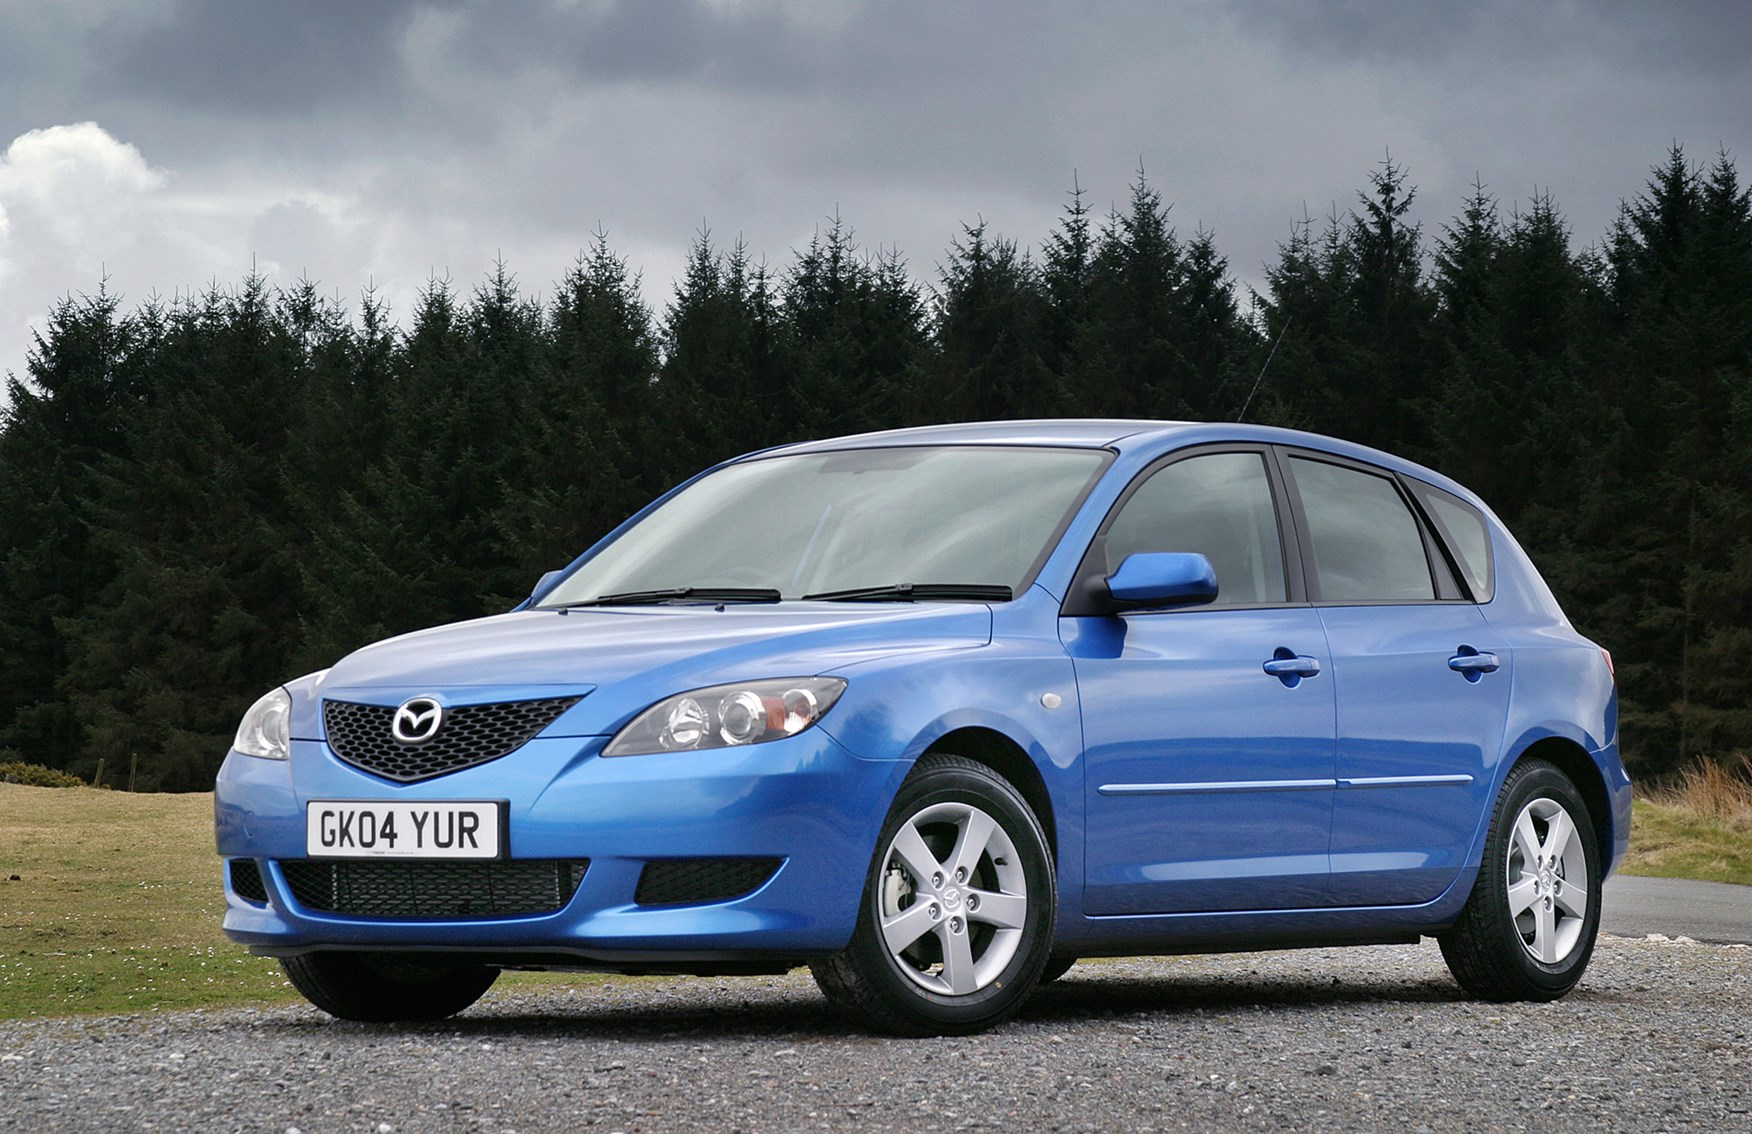 mazda 3 hatchback review (2004 - 2008) | parkers